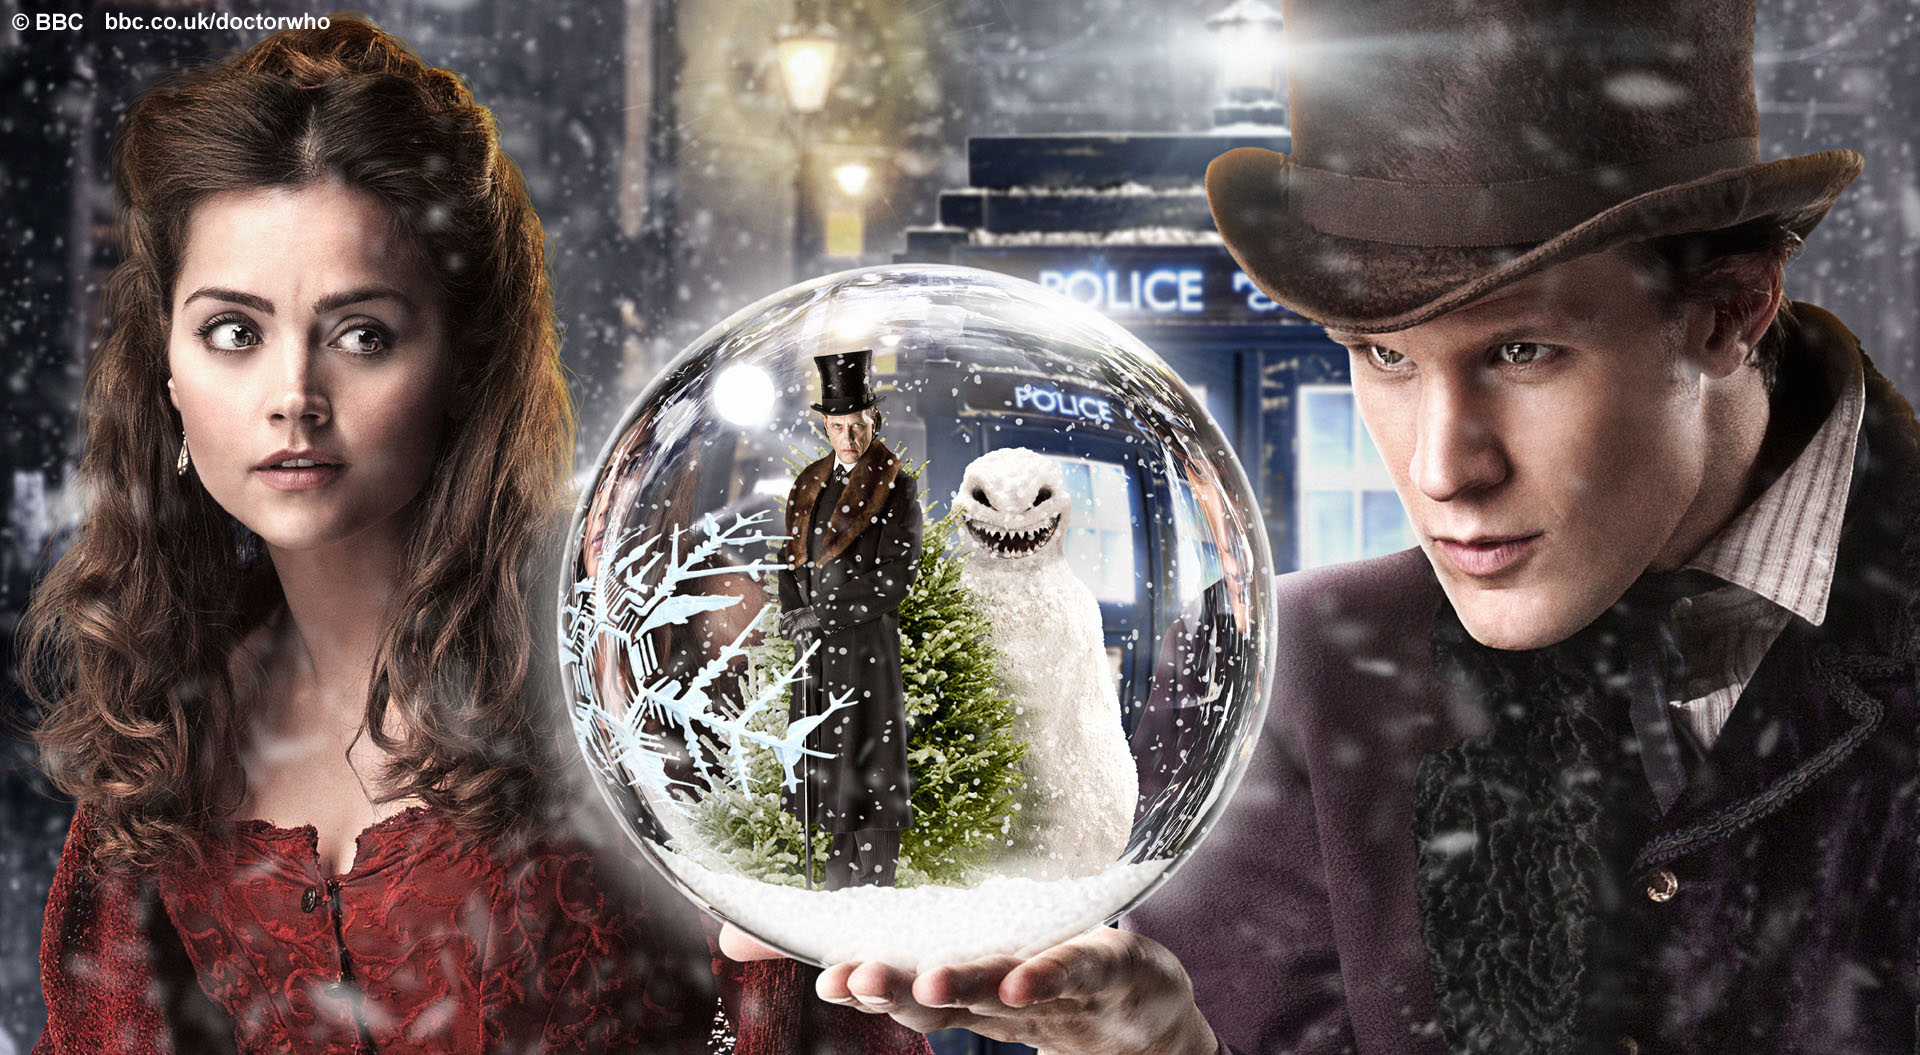 BBC Latest News   Doctor Who   Day 5 The Snowmen   New Galleries and 1920x1055